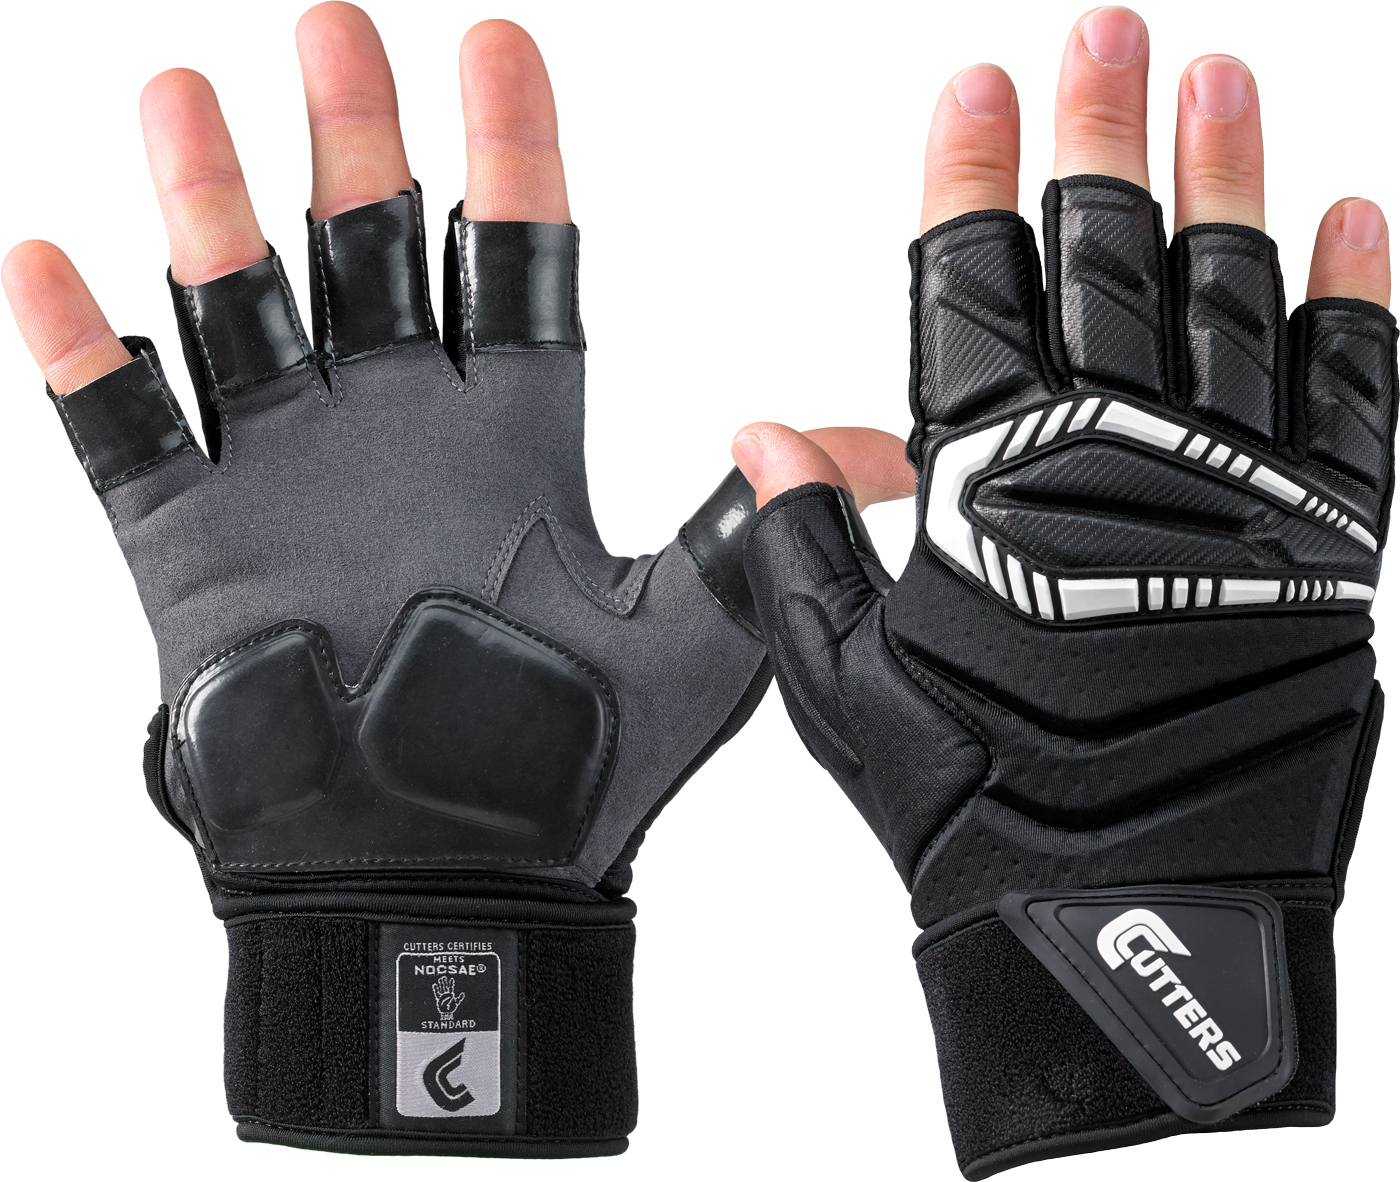 Top 10 Best Football Gloves review: